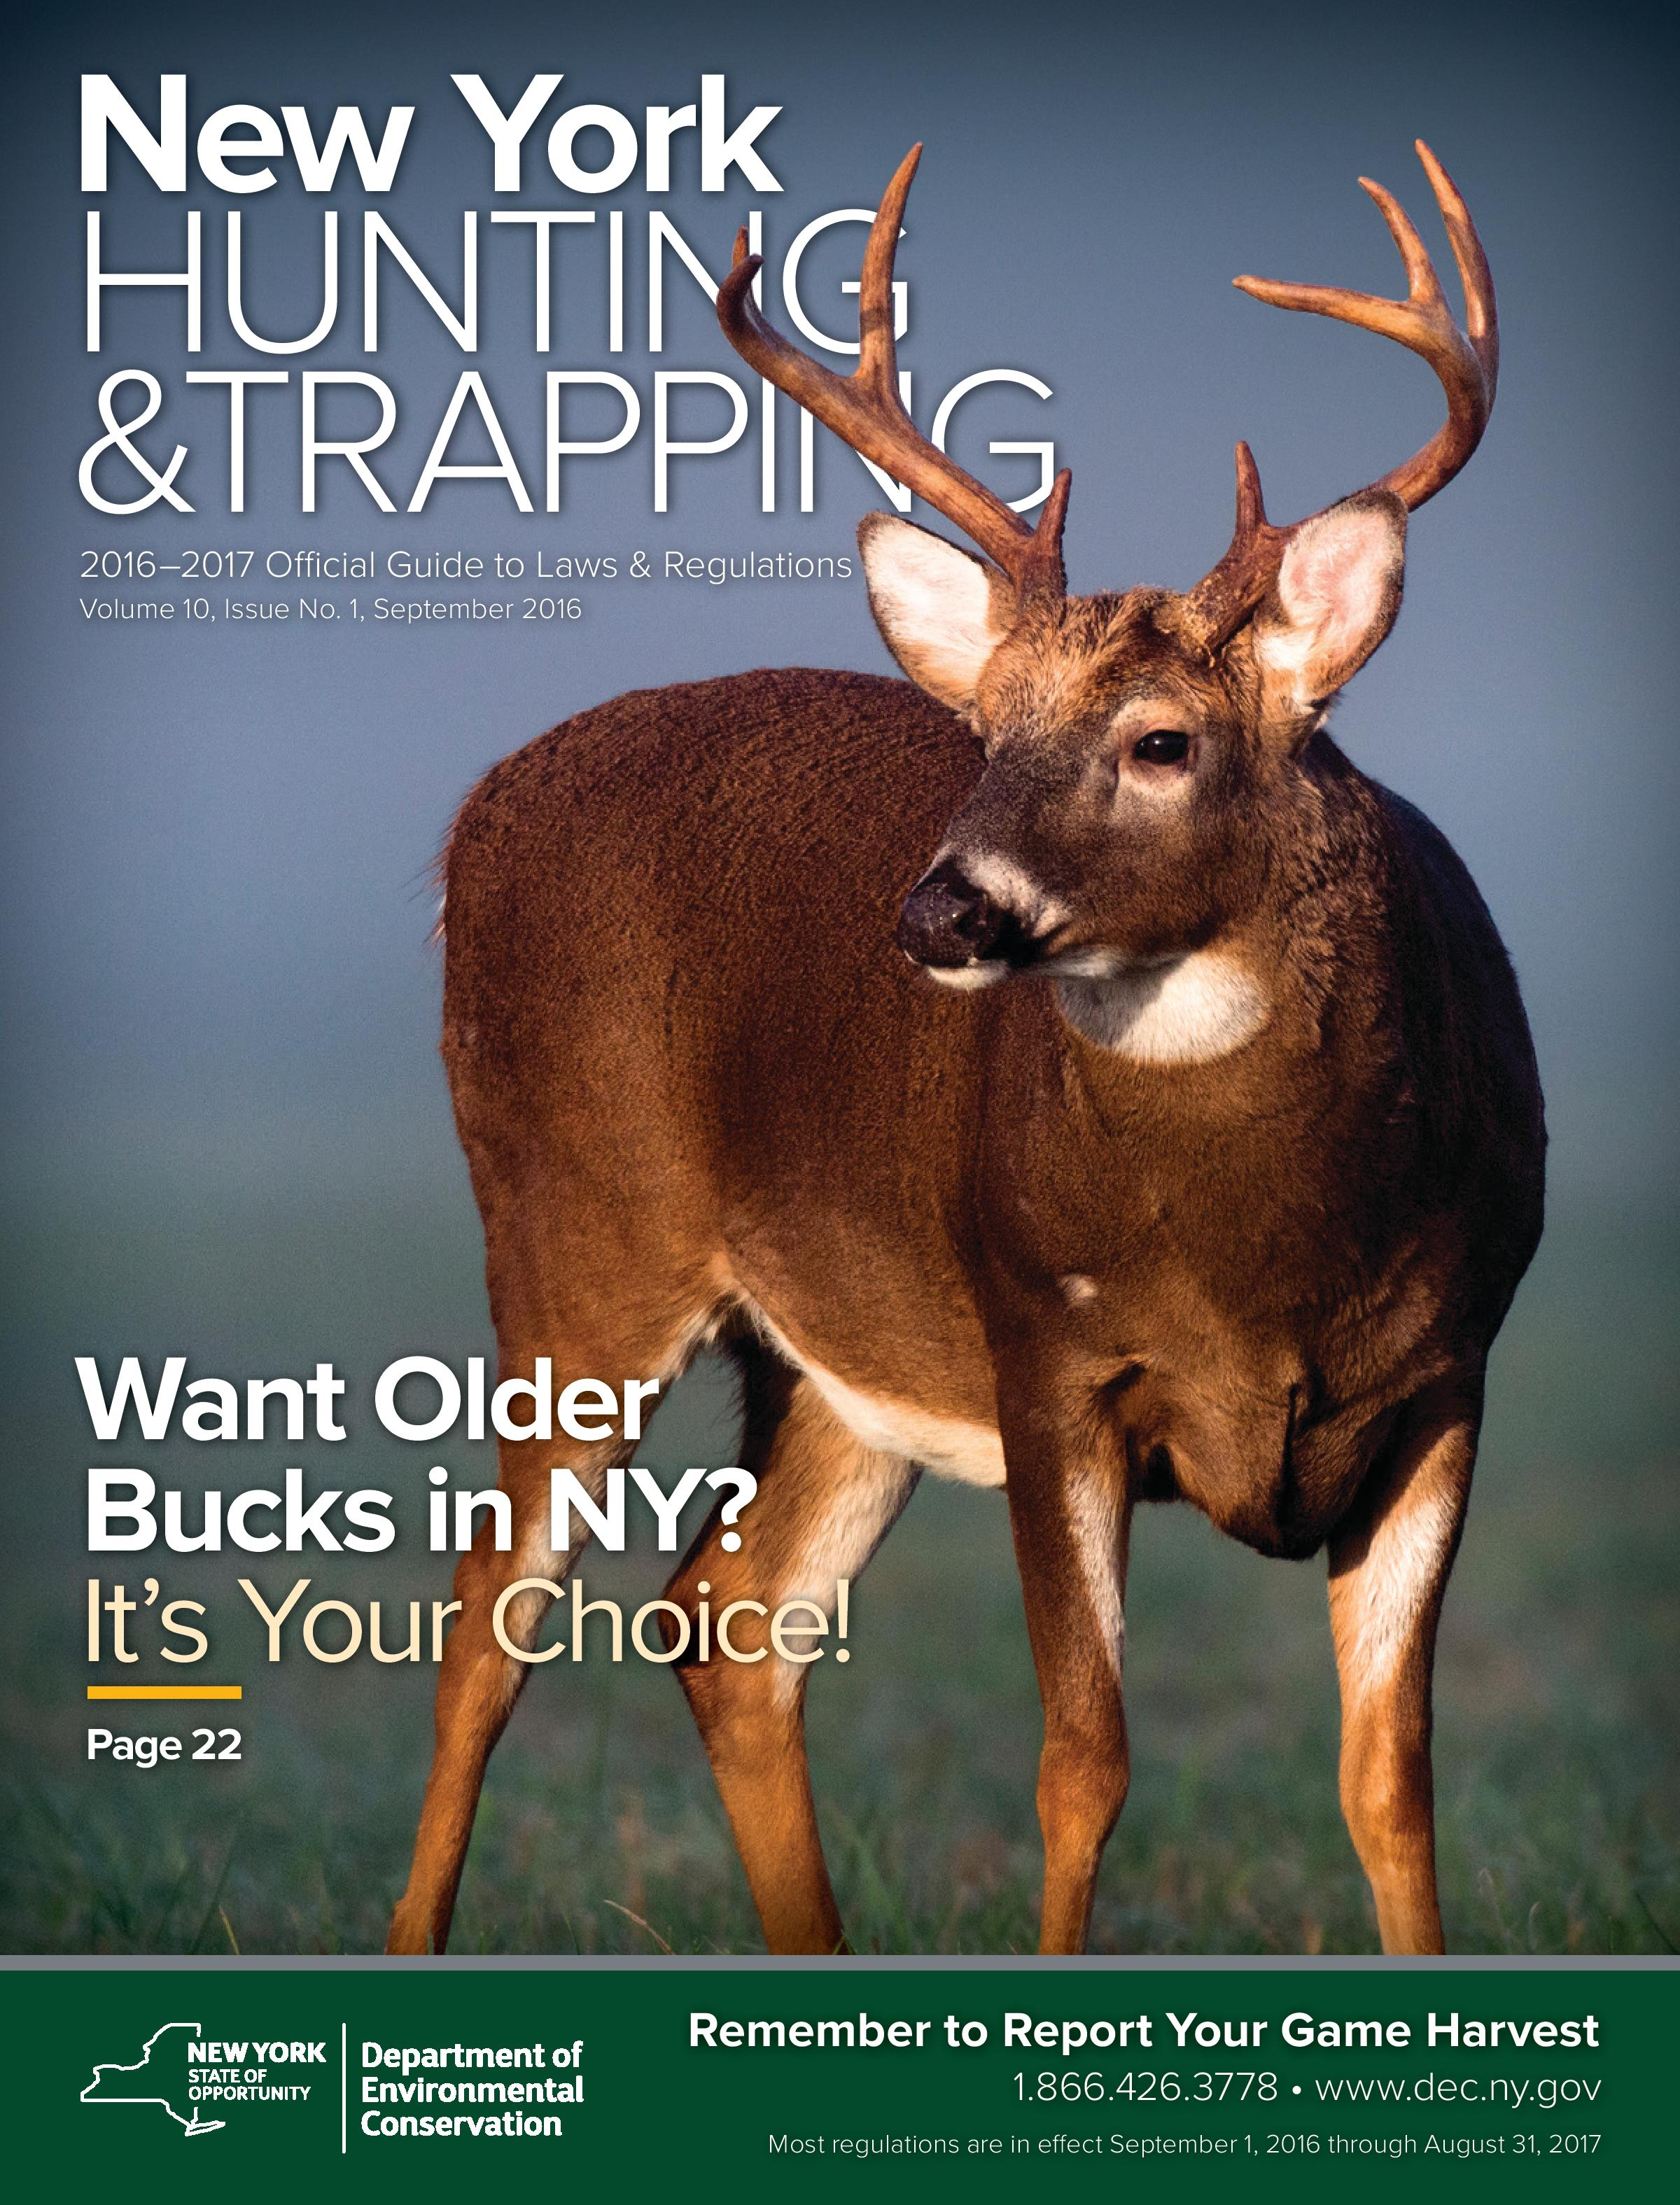 2014-15 Hunting & Trapping Regulations Guide cover image